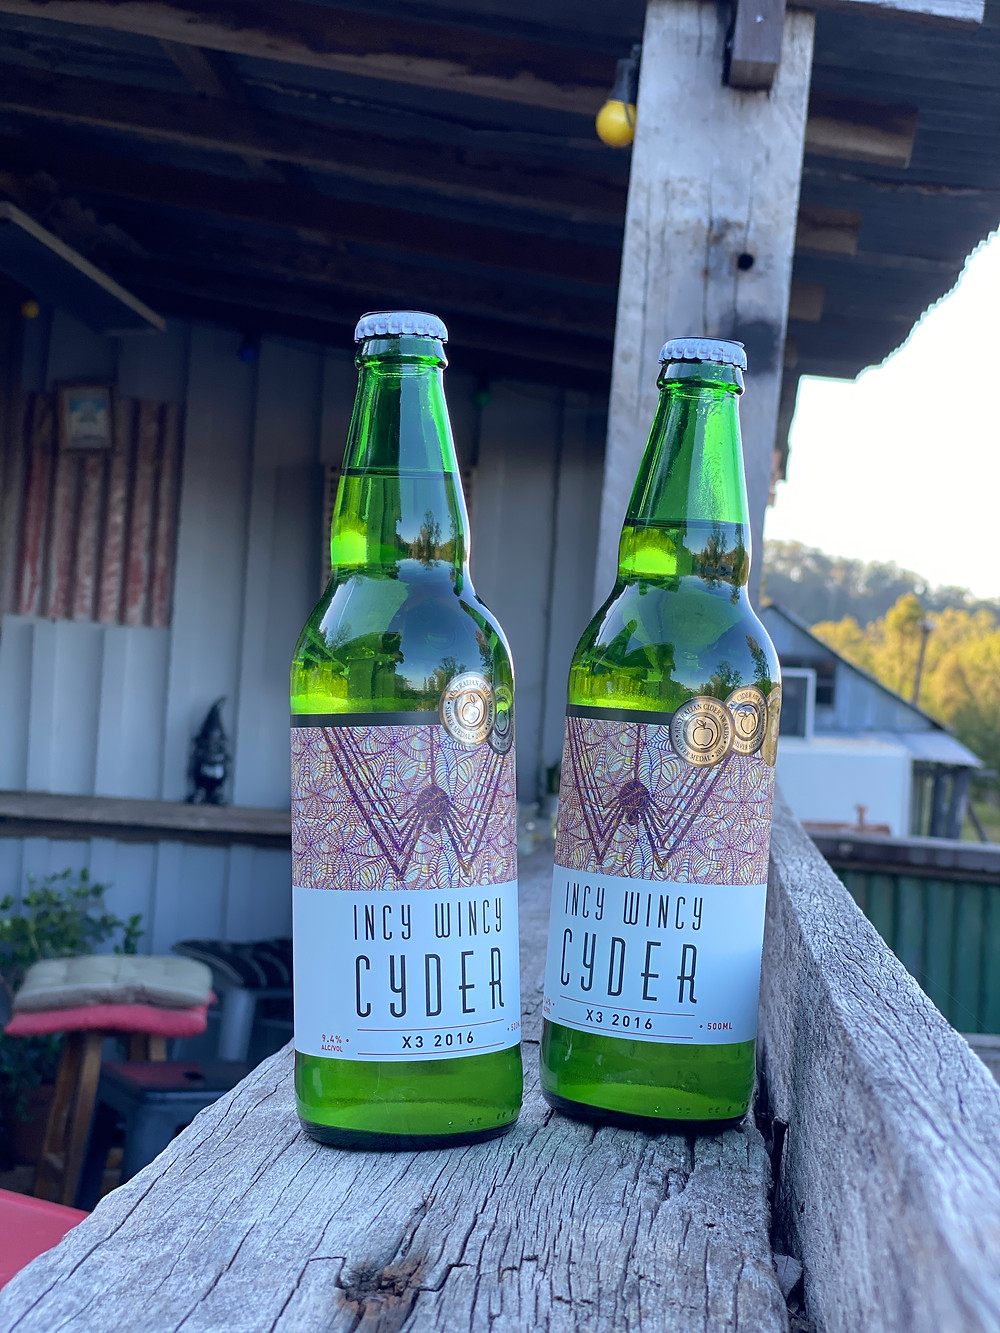 Cider at Great Northern Trading Post in Laguna